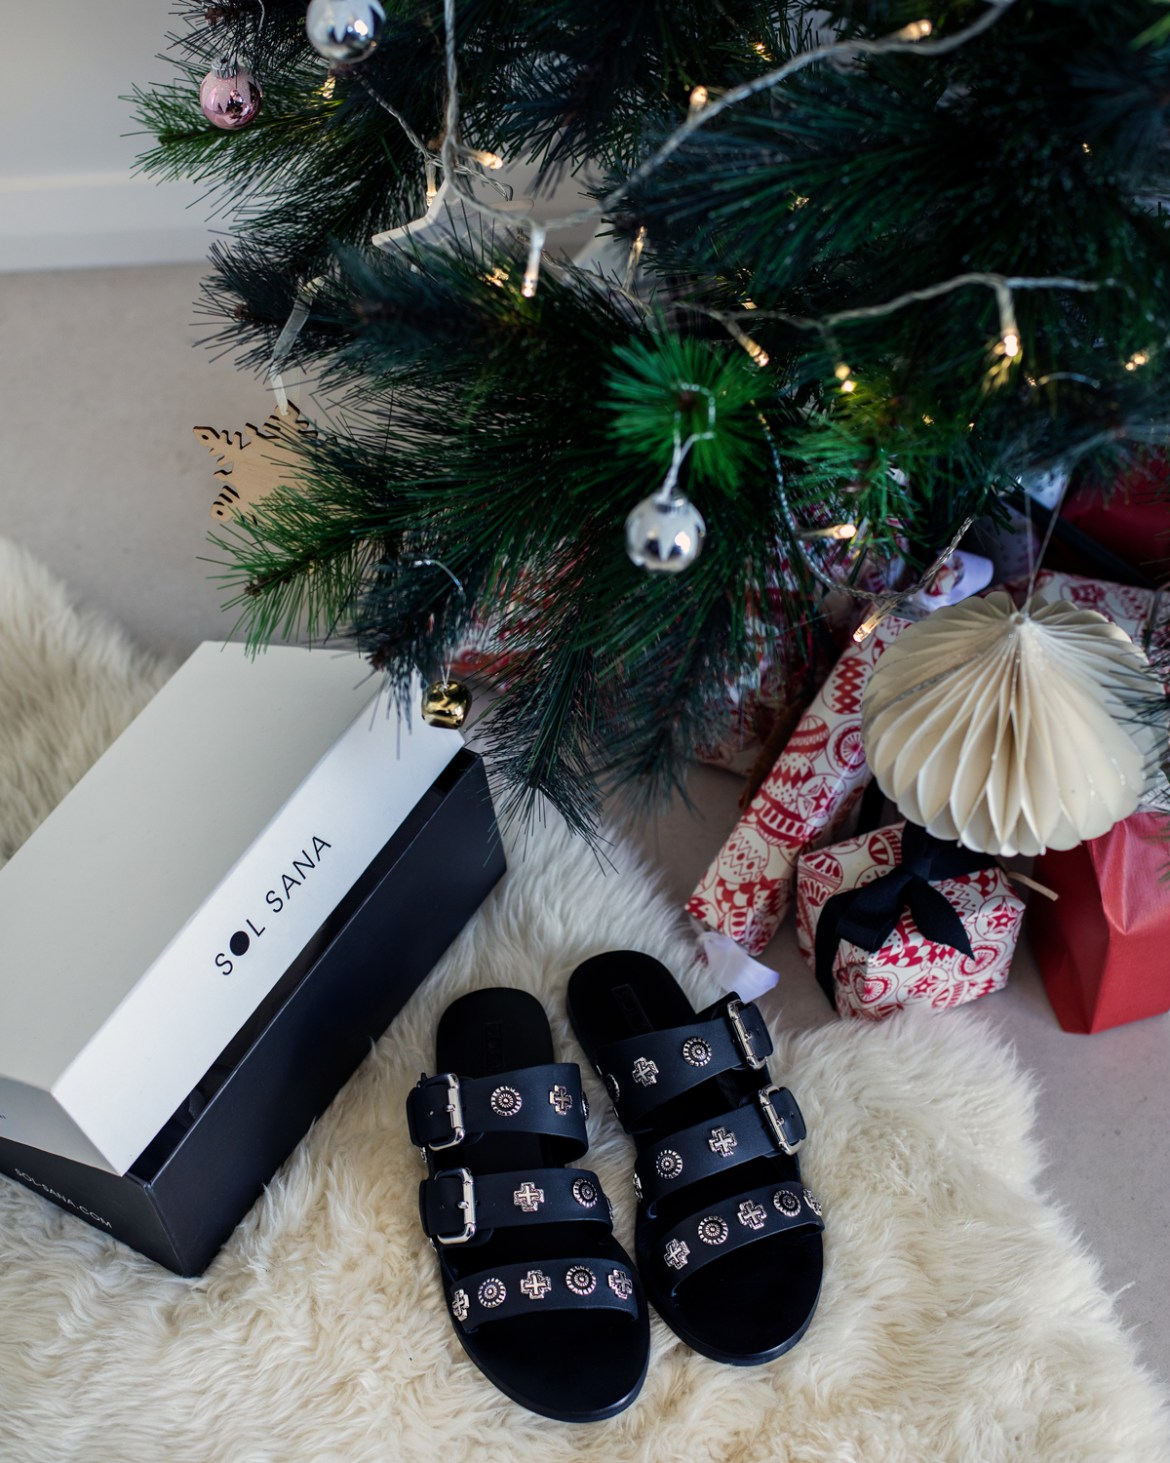 Sol Sana leather sandals under the Christmas tree for a last minute gift idea